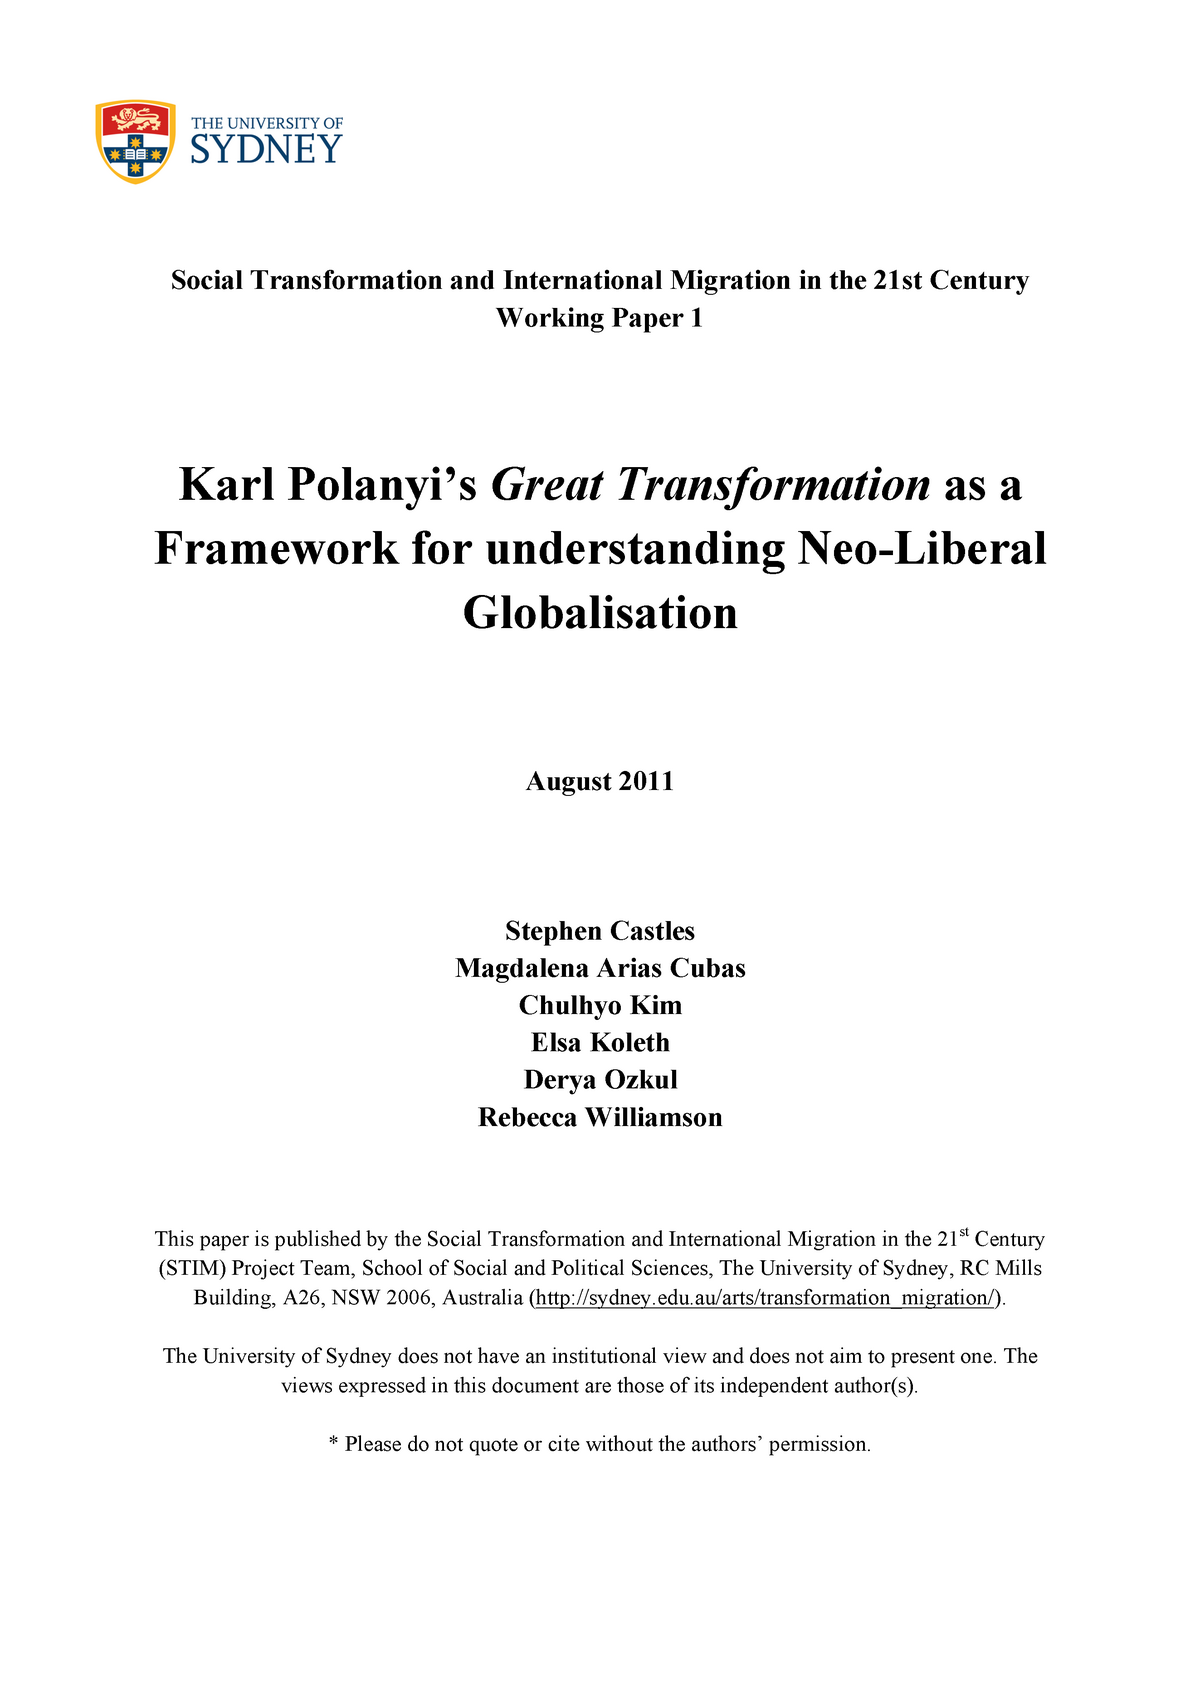 The great transformation as a framework for understanding - StuDocu